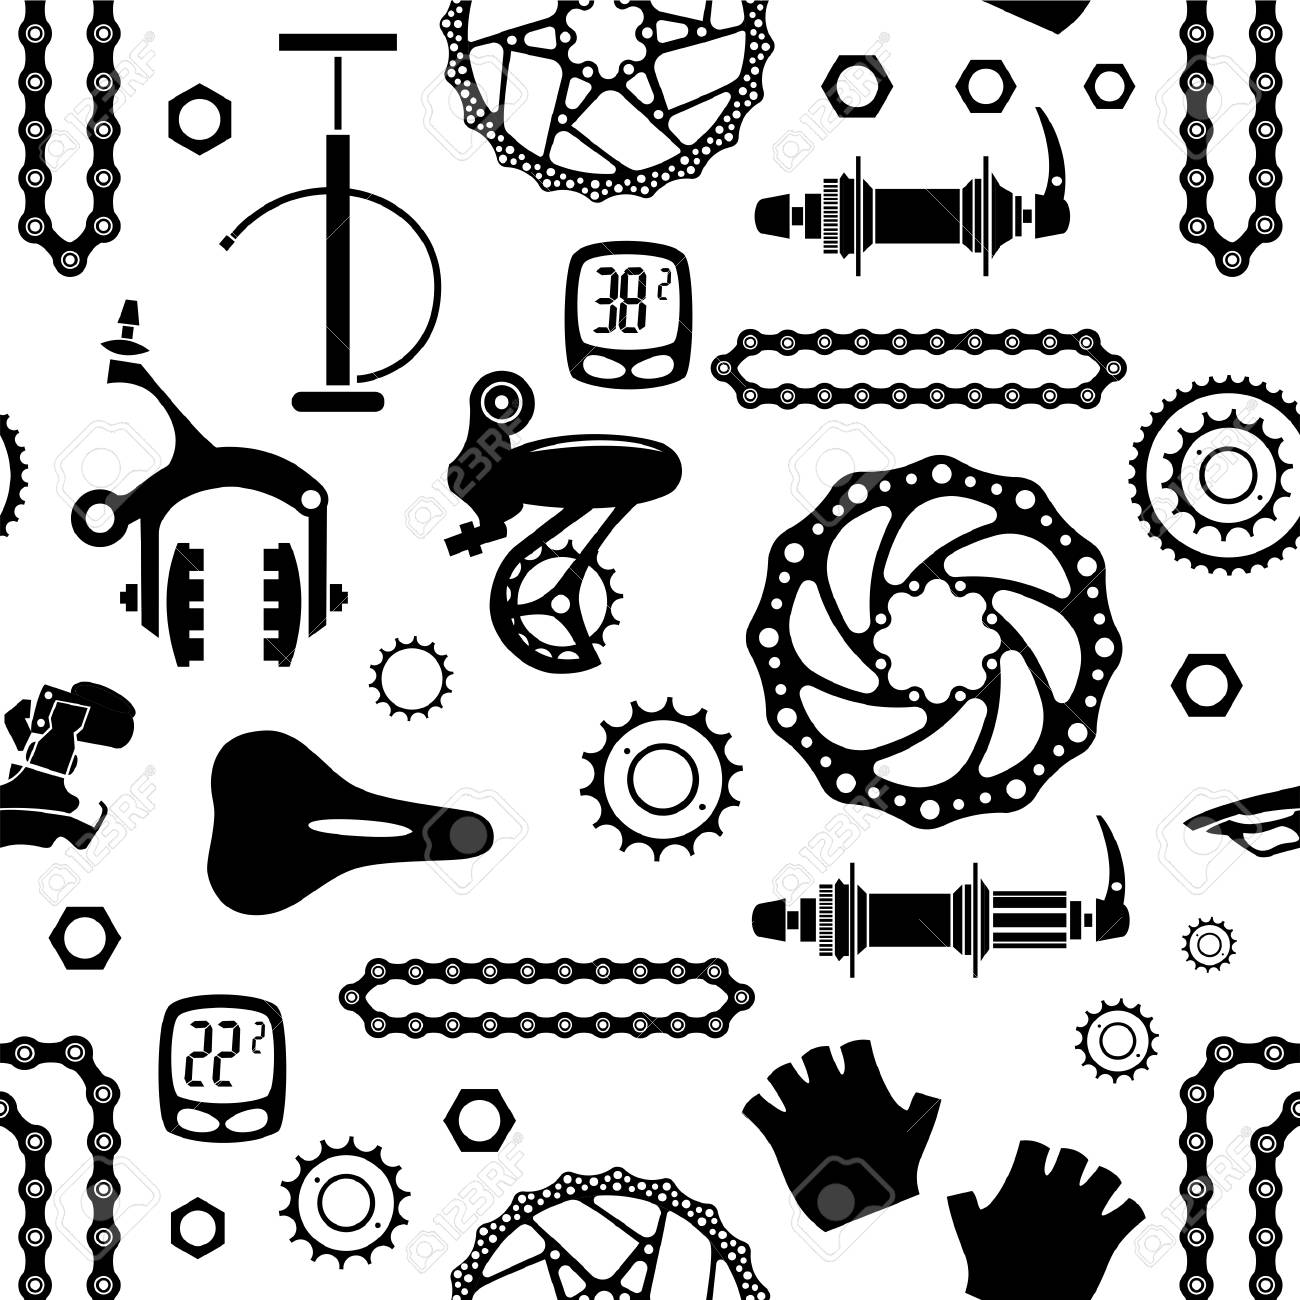 Bicycles Seamless Vector Pattern With Bicycle Parts Royalty Free